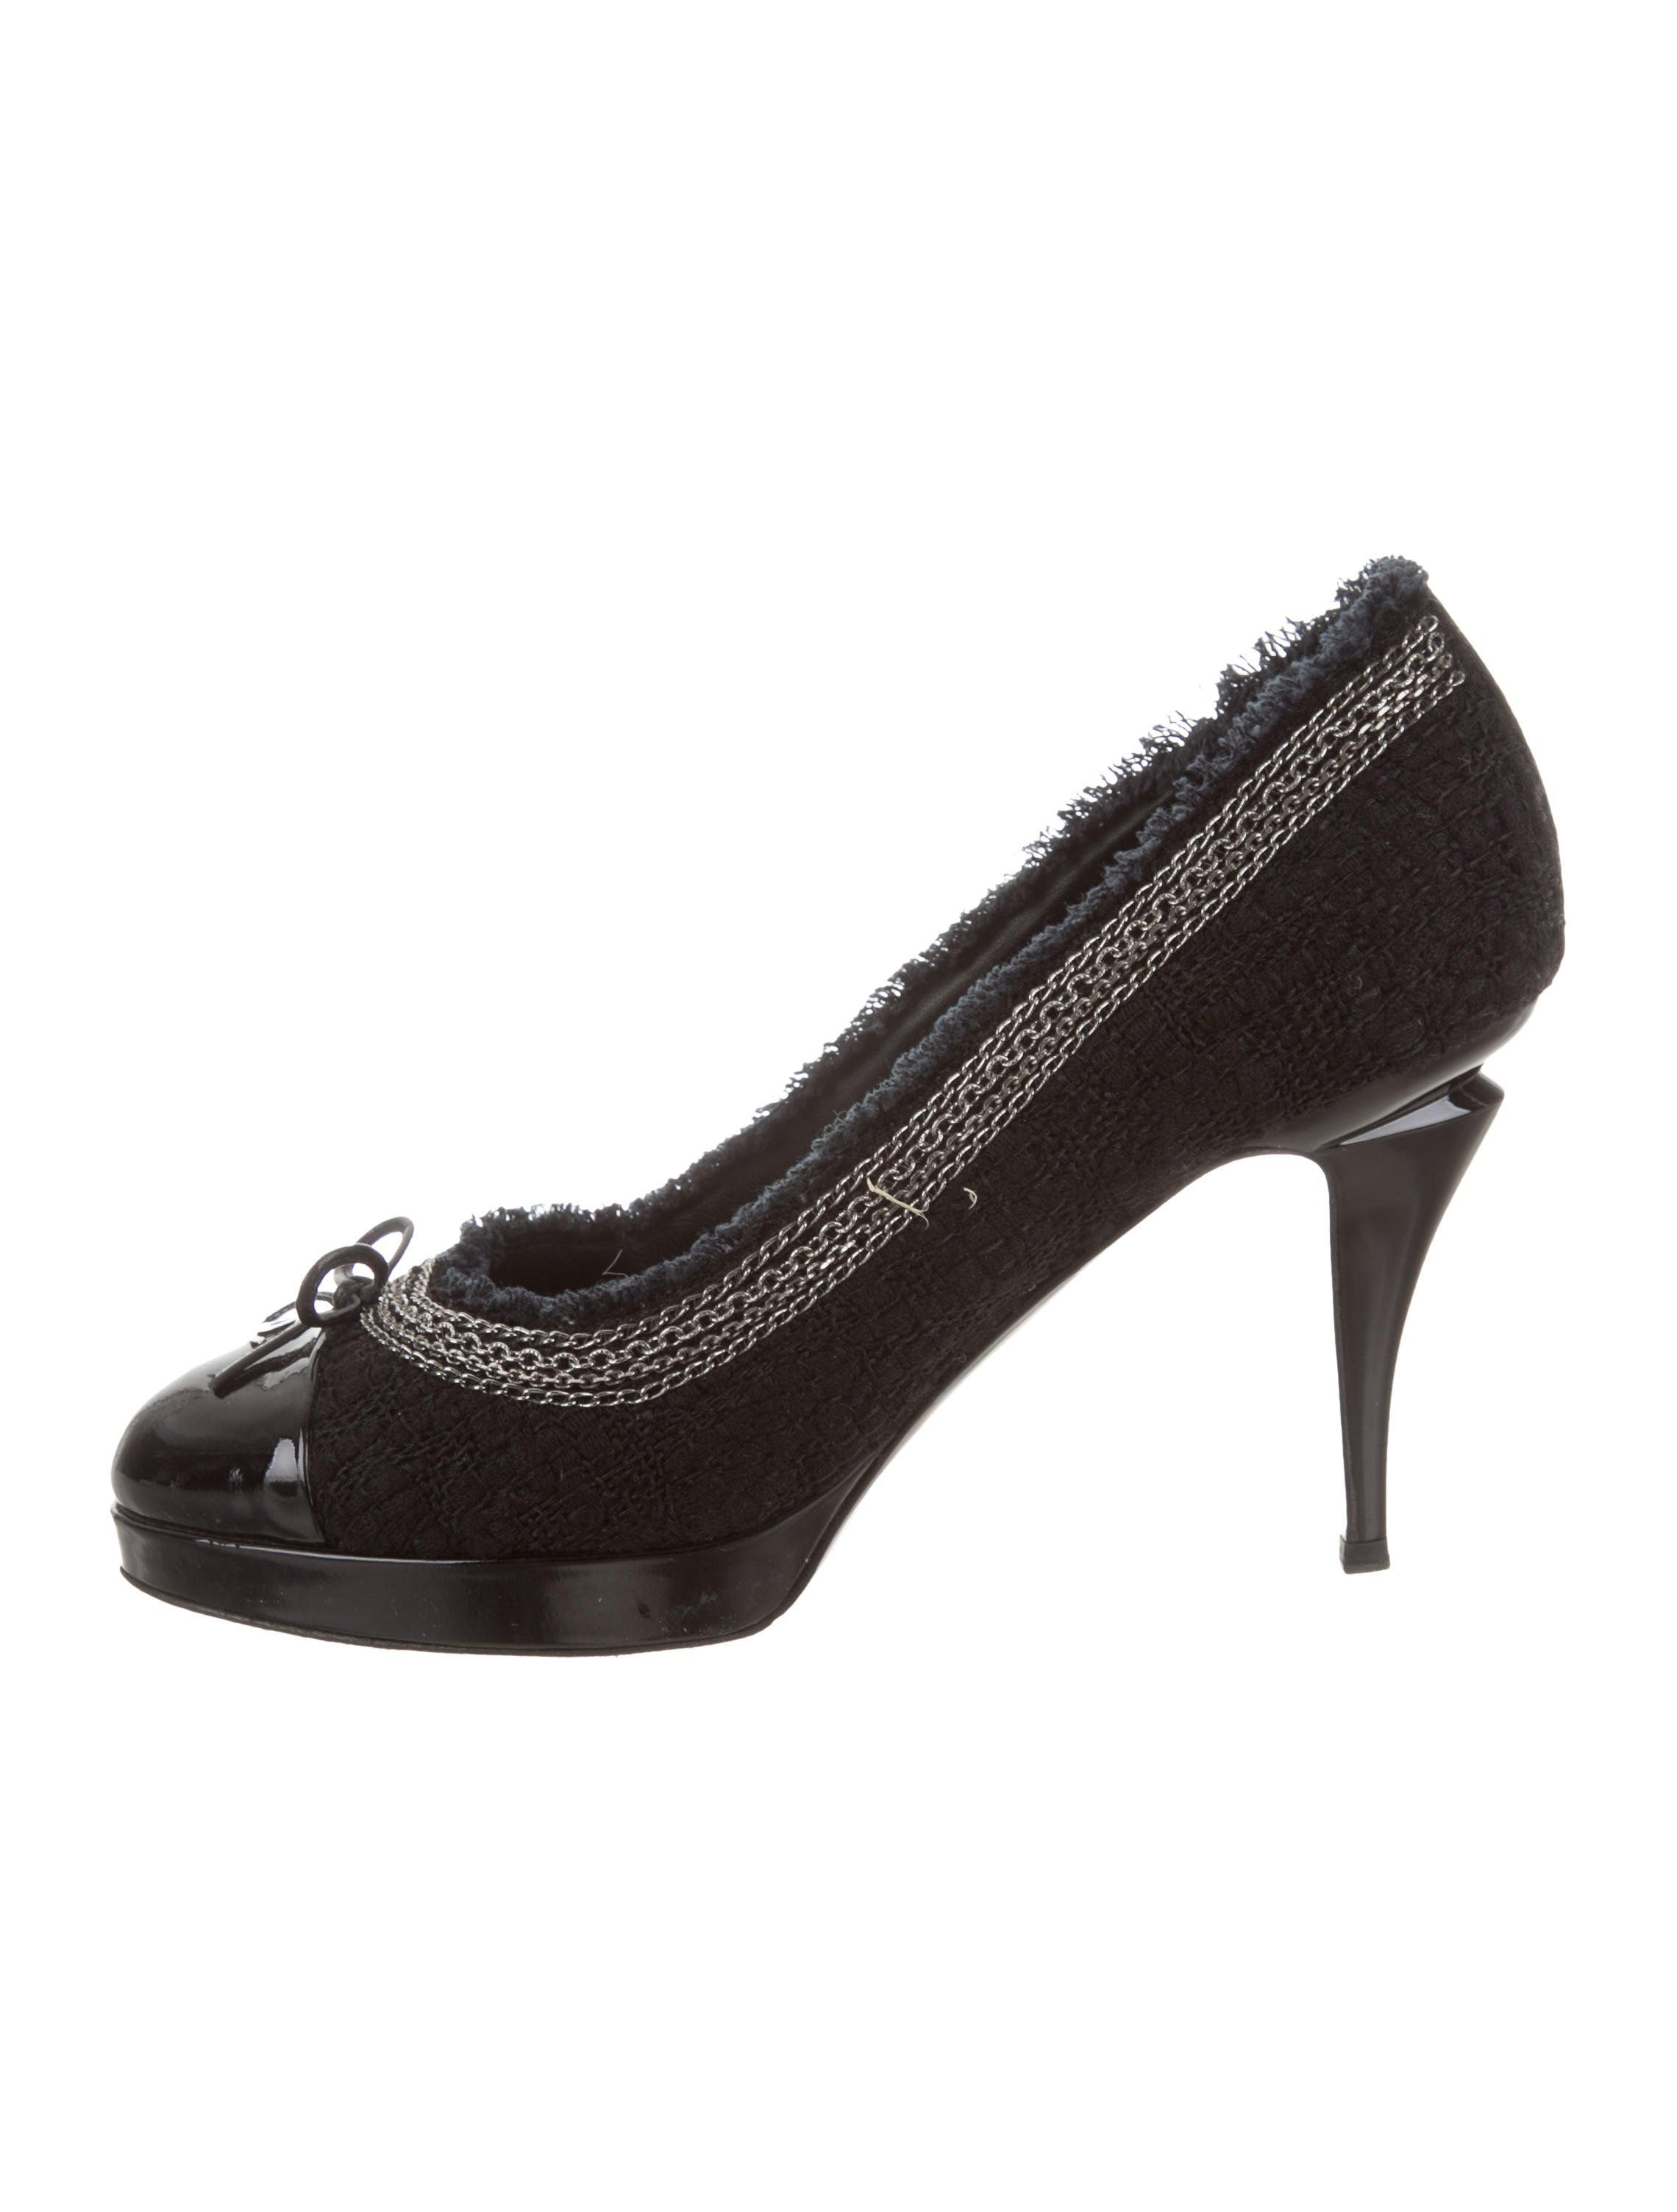 910eac476a61 Black and midnight tweed and patent leather Chanel round-toe platform pumps  with cap toes